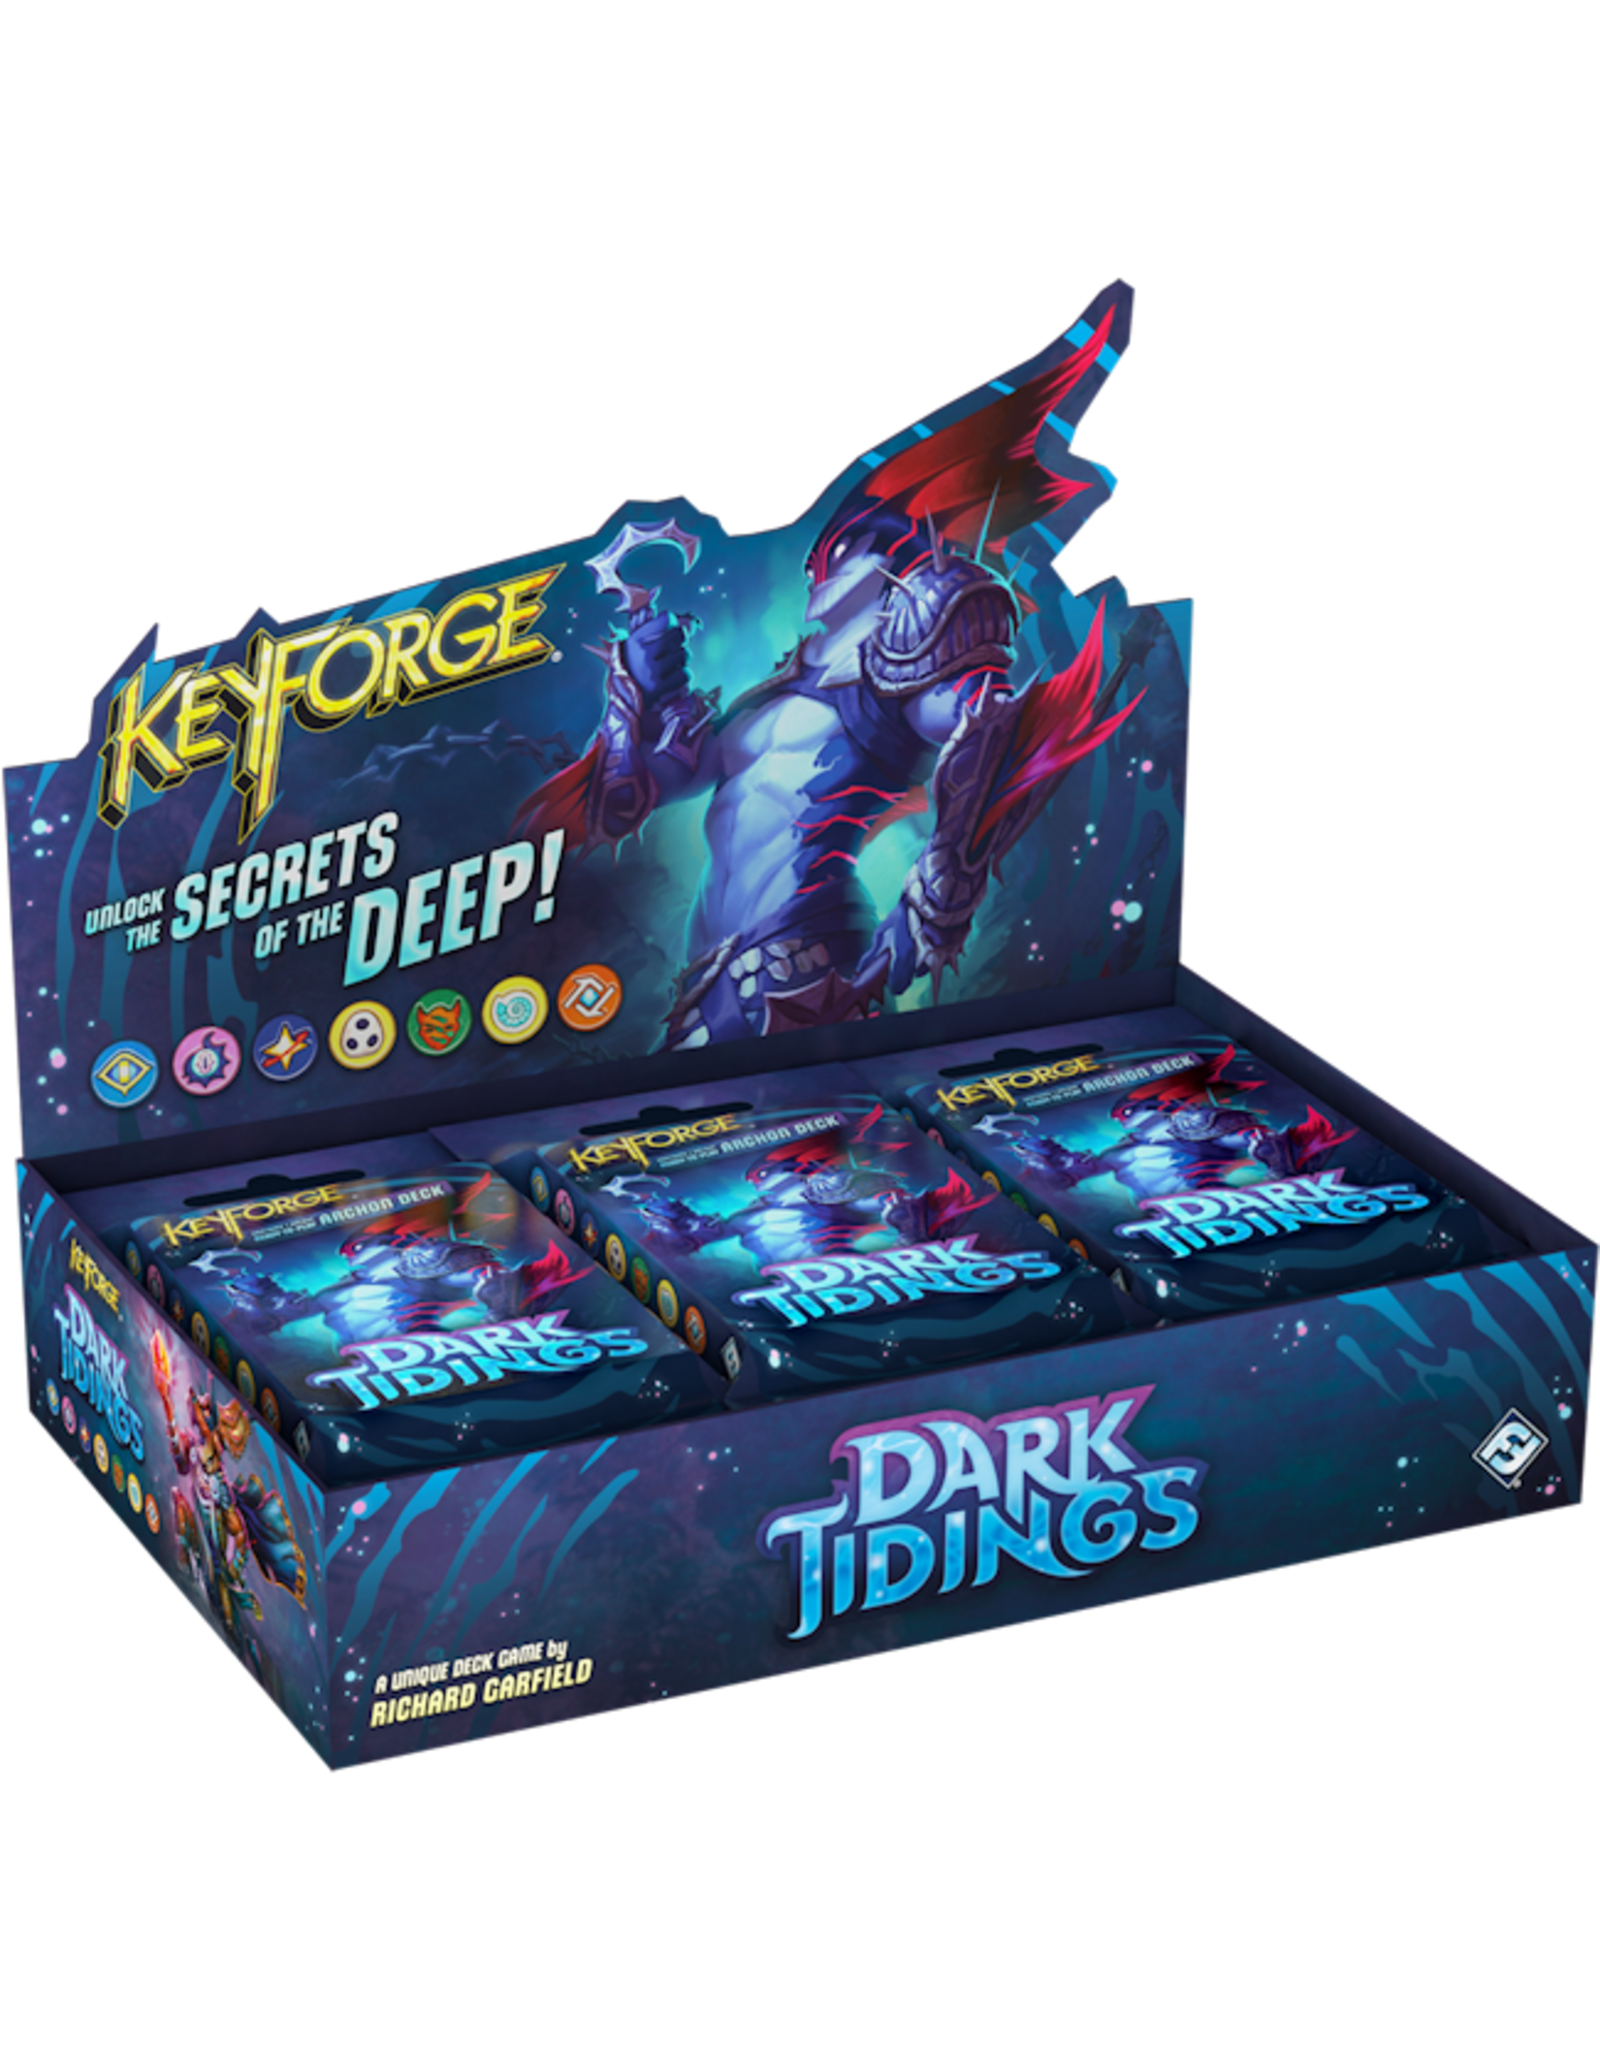 FANTASY FLIGHT GAMES KEYFORGE DARK TIDINGS ARCHON DECK DISPLAY BOX PRE-ORDER